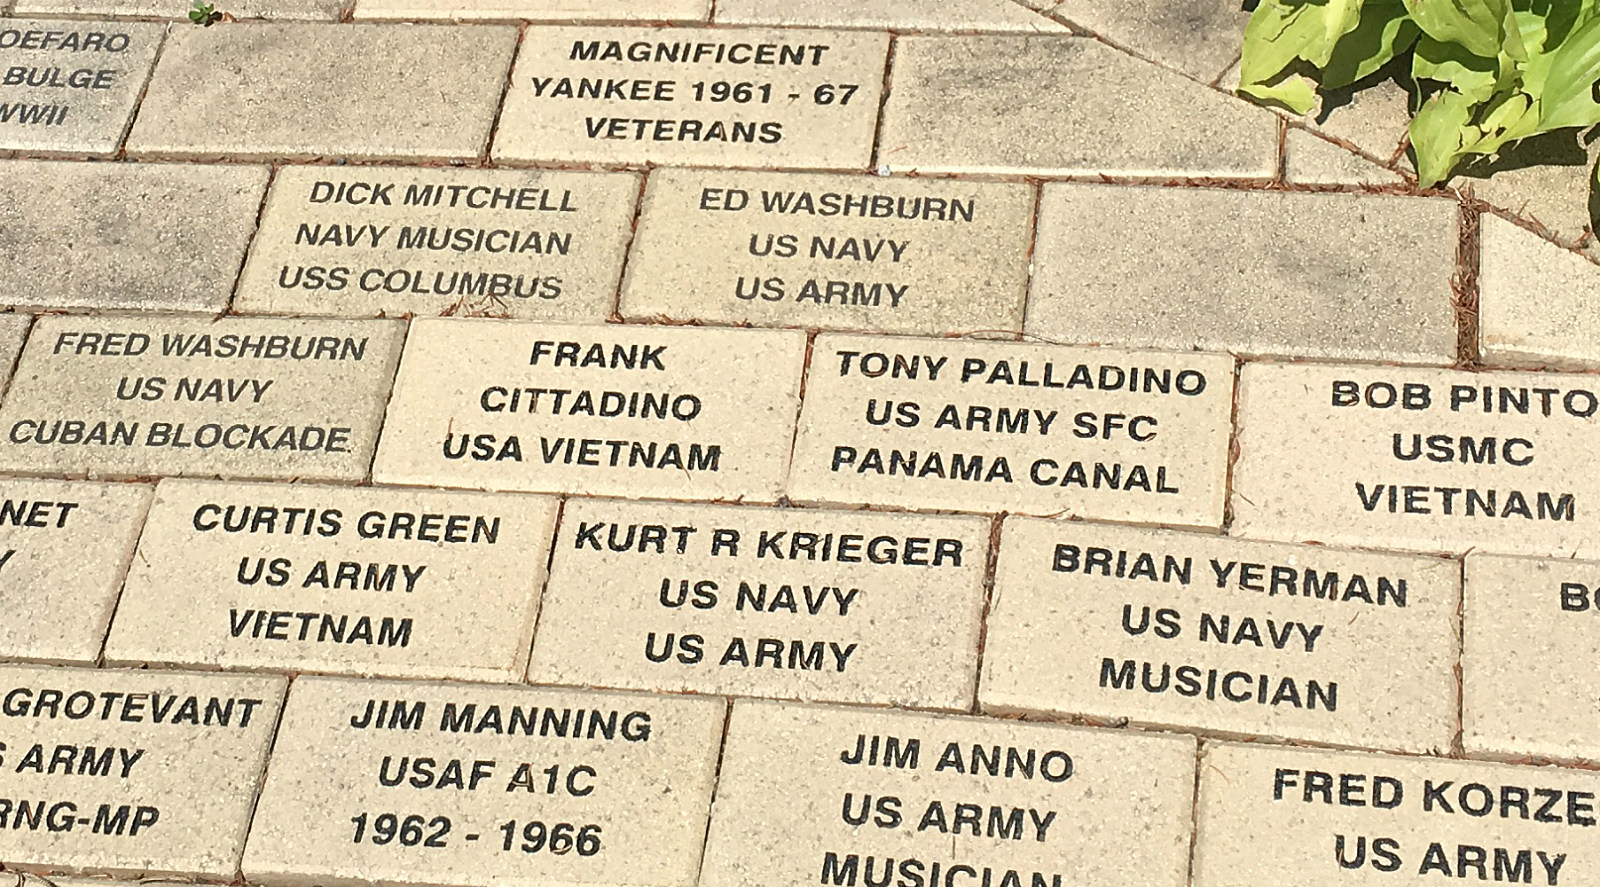 Magnificent Yankees Honor Bricks 2